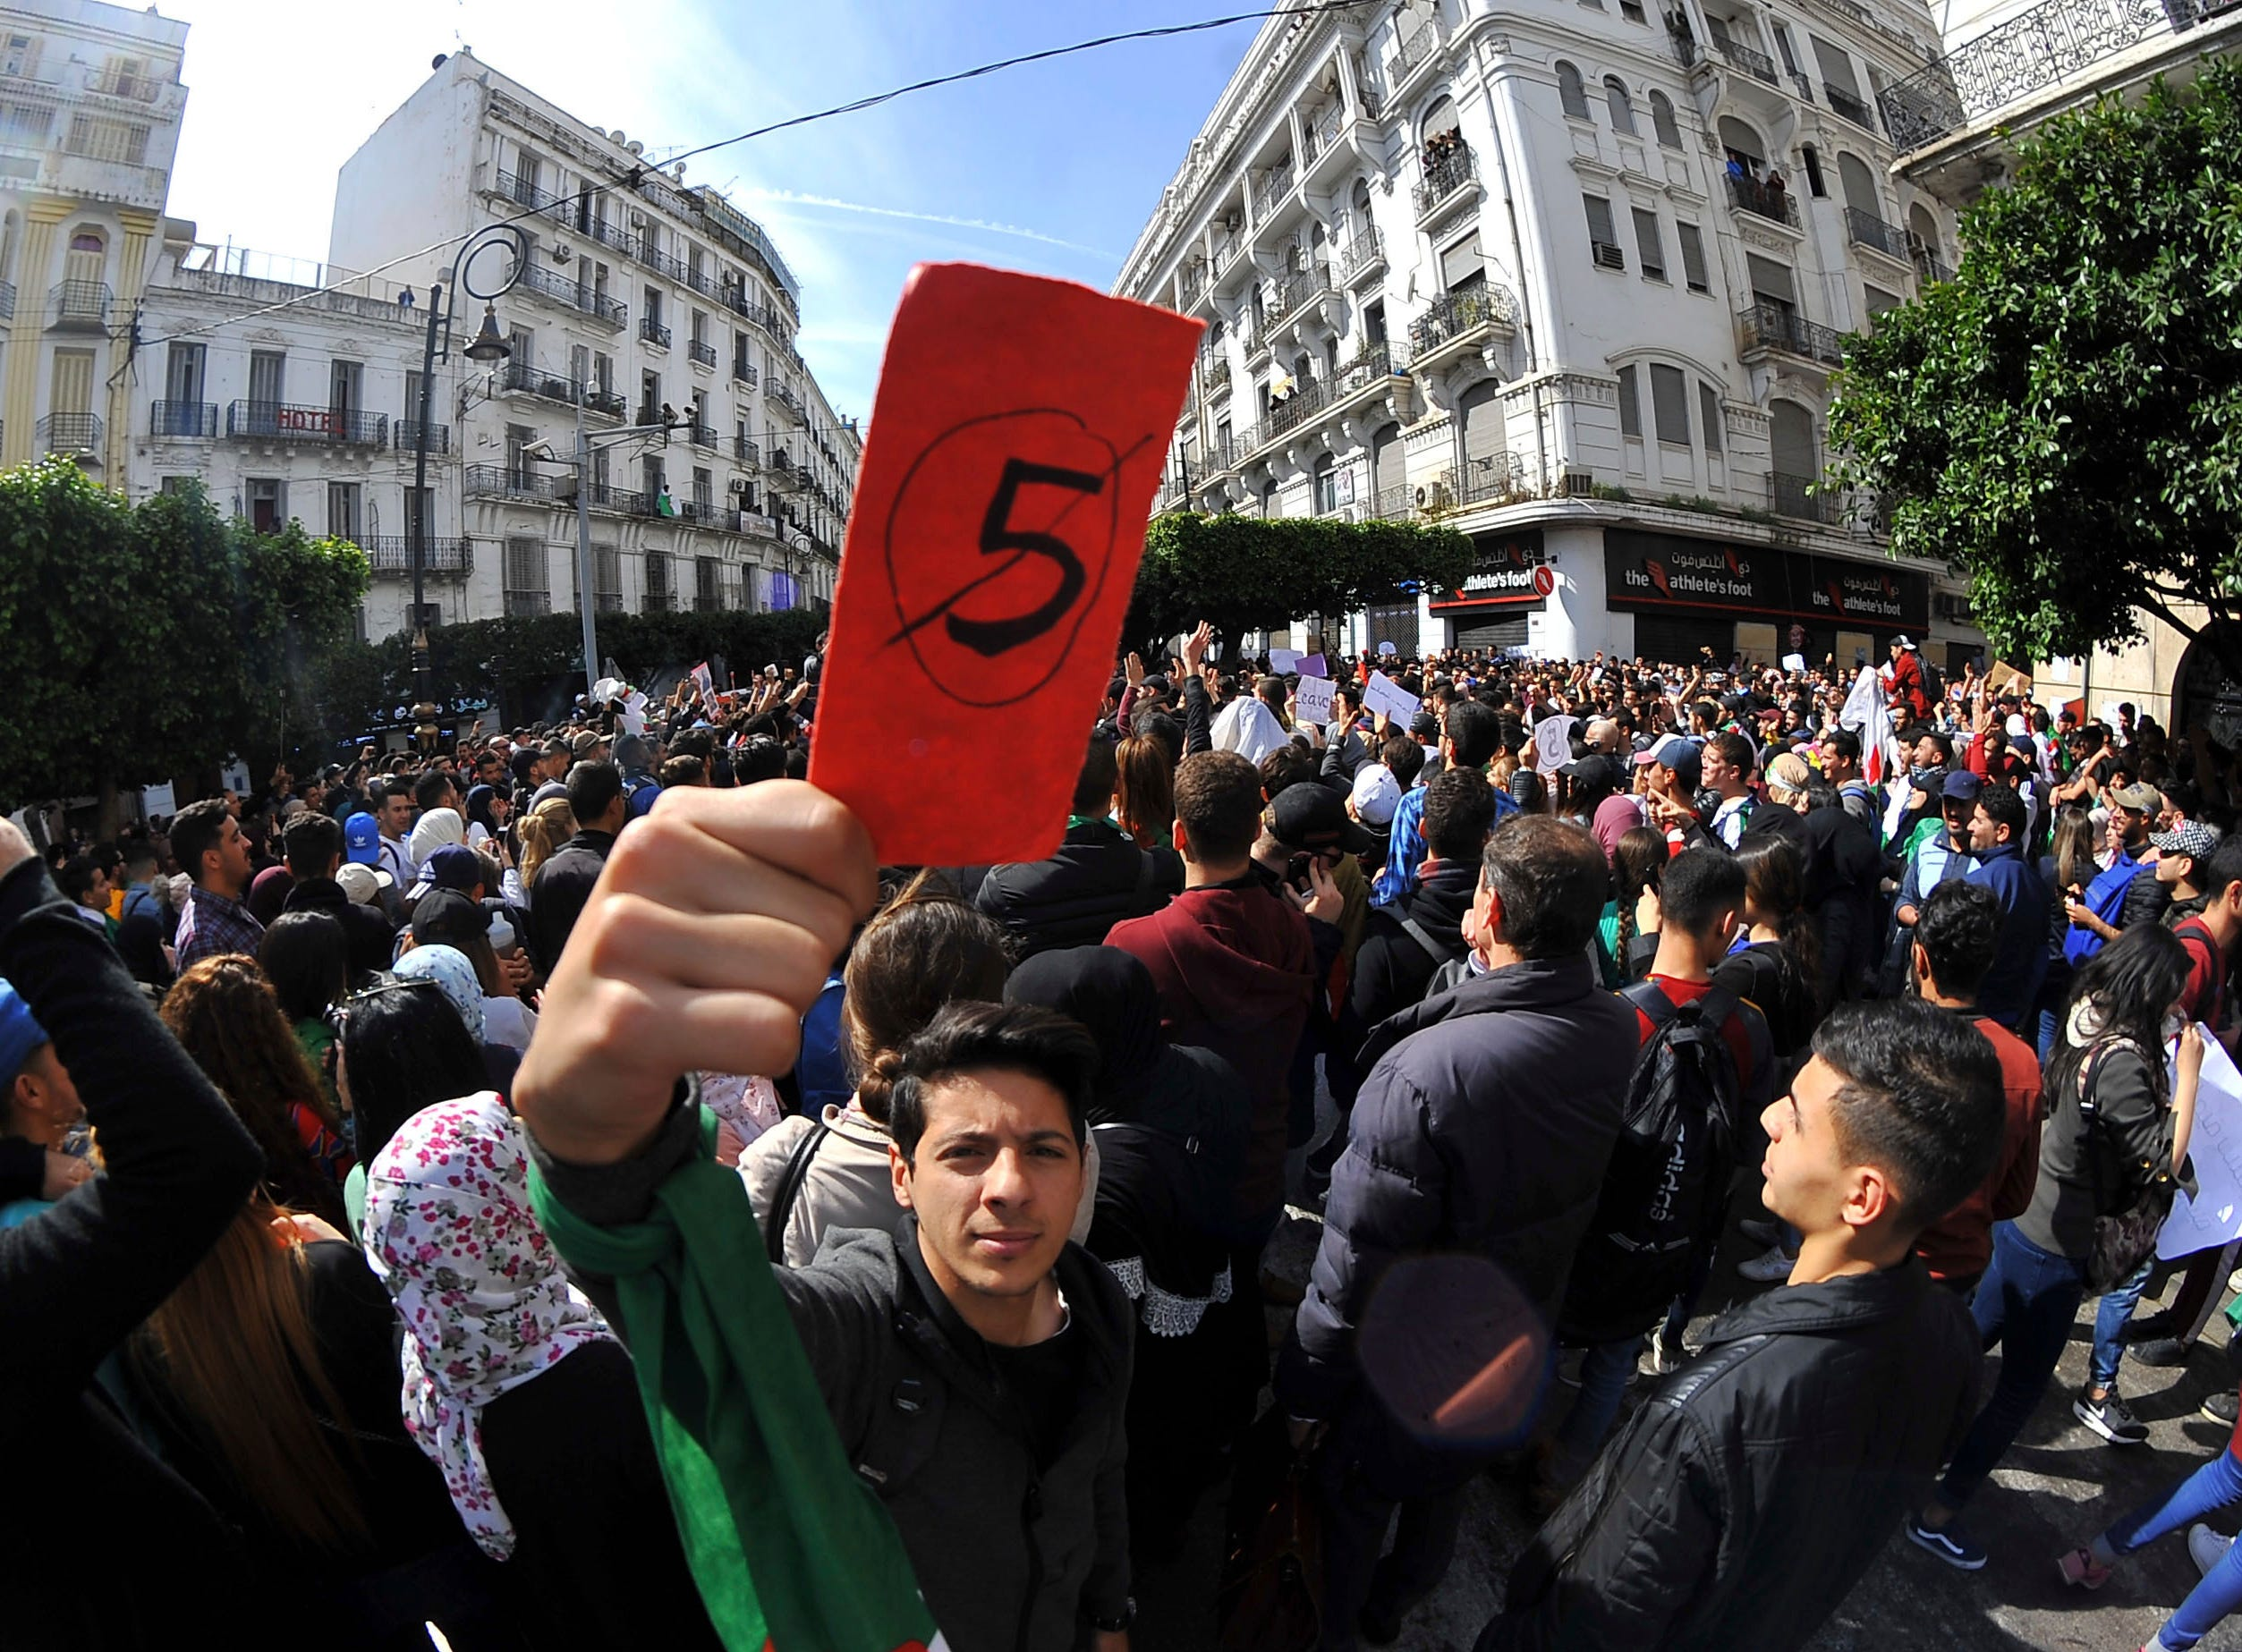 Hundreds of students gather in central Algiers to protest Algerian President Abdelaziz Bouteflika's decision to seek fifth term, Tuesday, March 5, 2019. Algerian students are gathering for new protests and are calling for a general strike if he doesn't meet their demands this week.